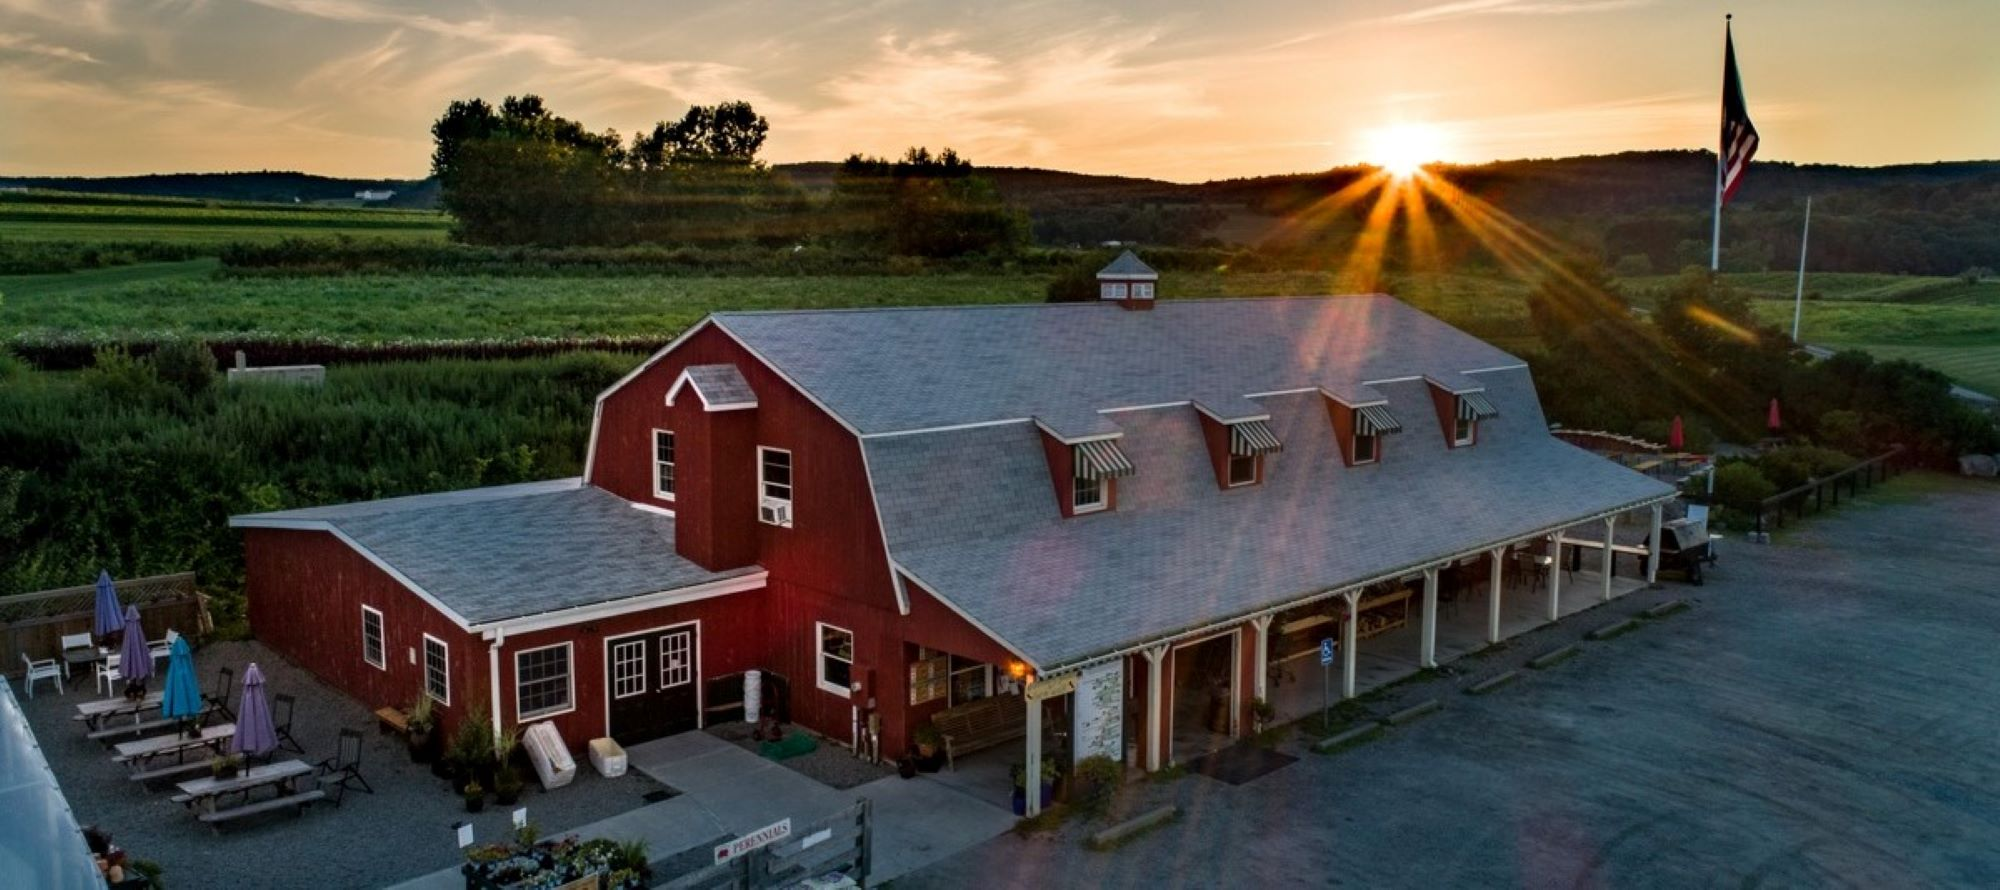 Market & Eatery, Located at 5409 Route 22, Millerton, NY